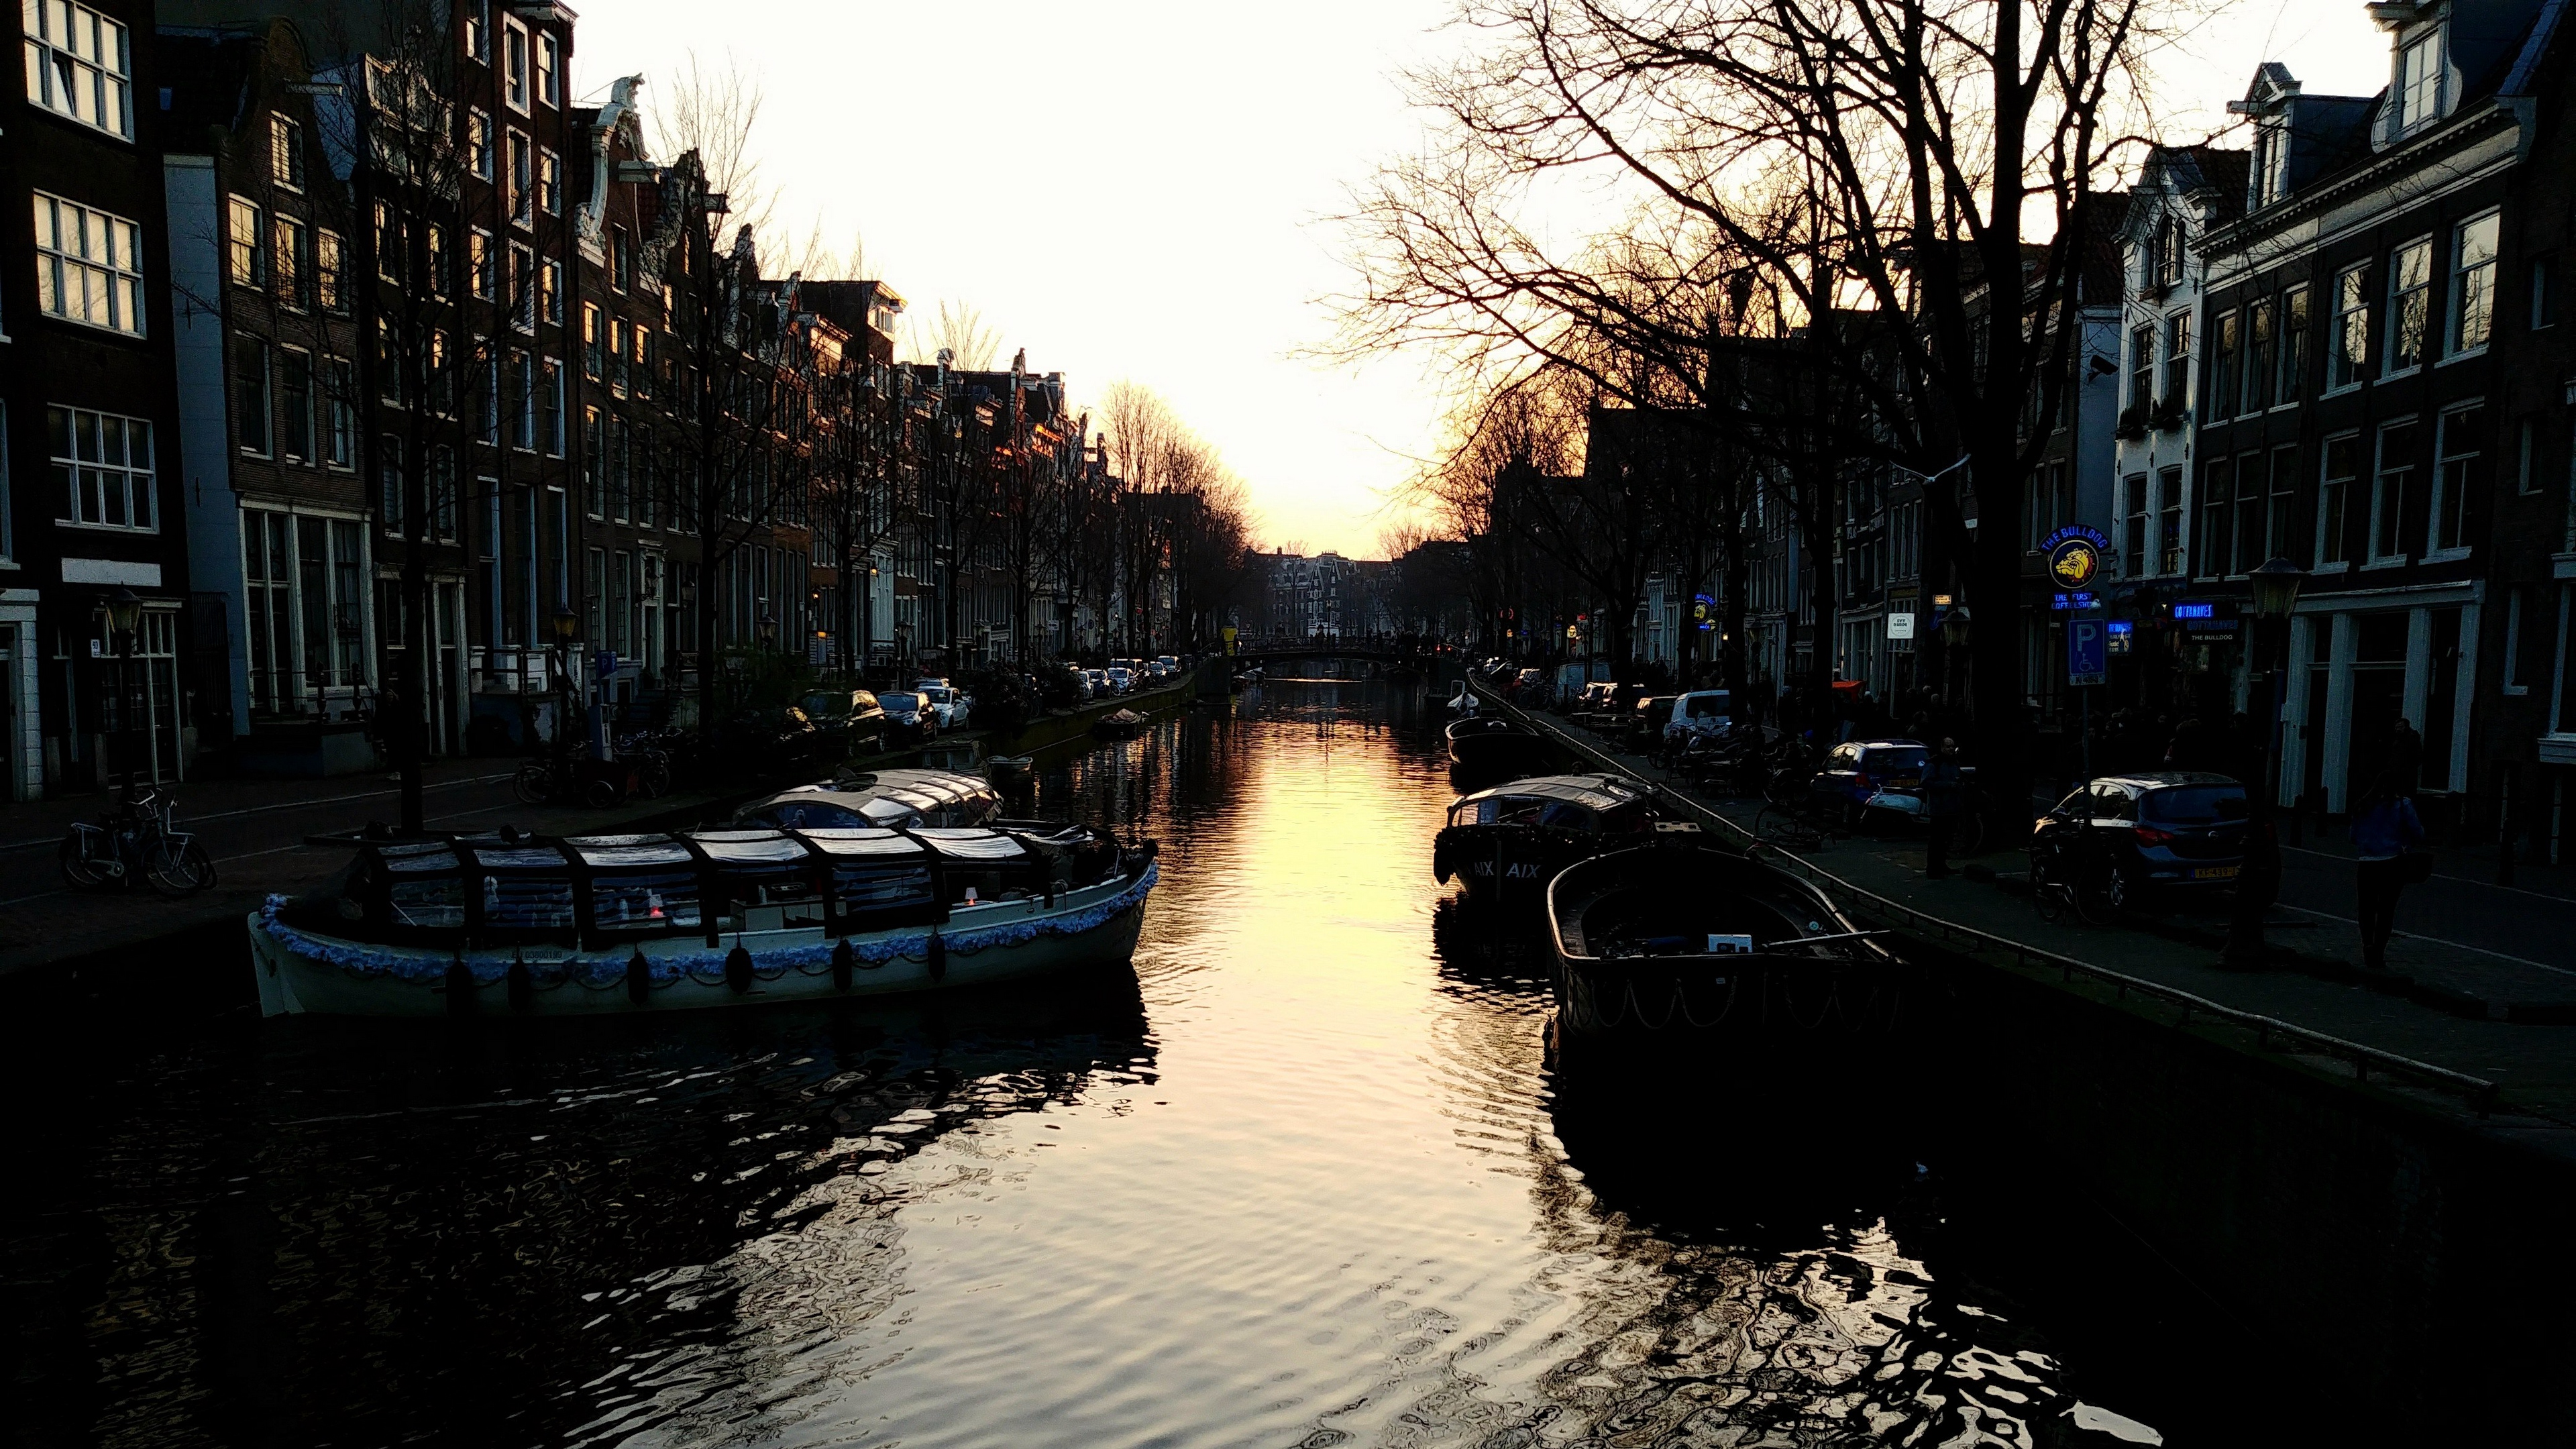 canal boats sunset amsterdam buildings 4k 1538065169 - canal, boats, sunset, amsterdam, buildings 4k - sunset, Canal, boats